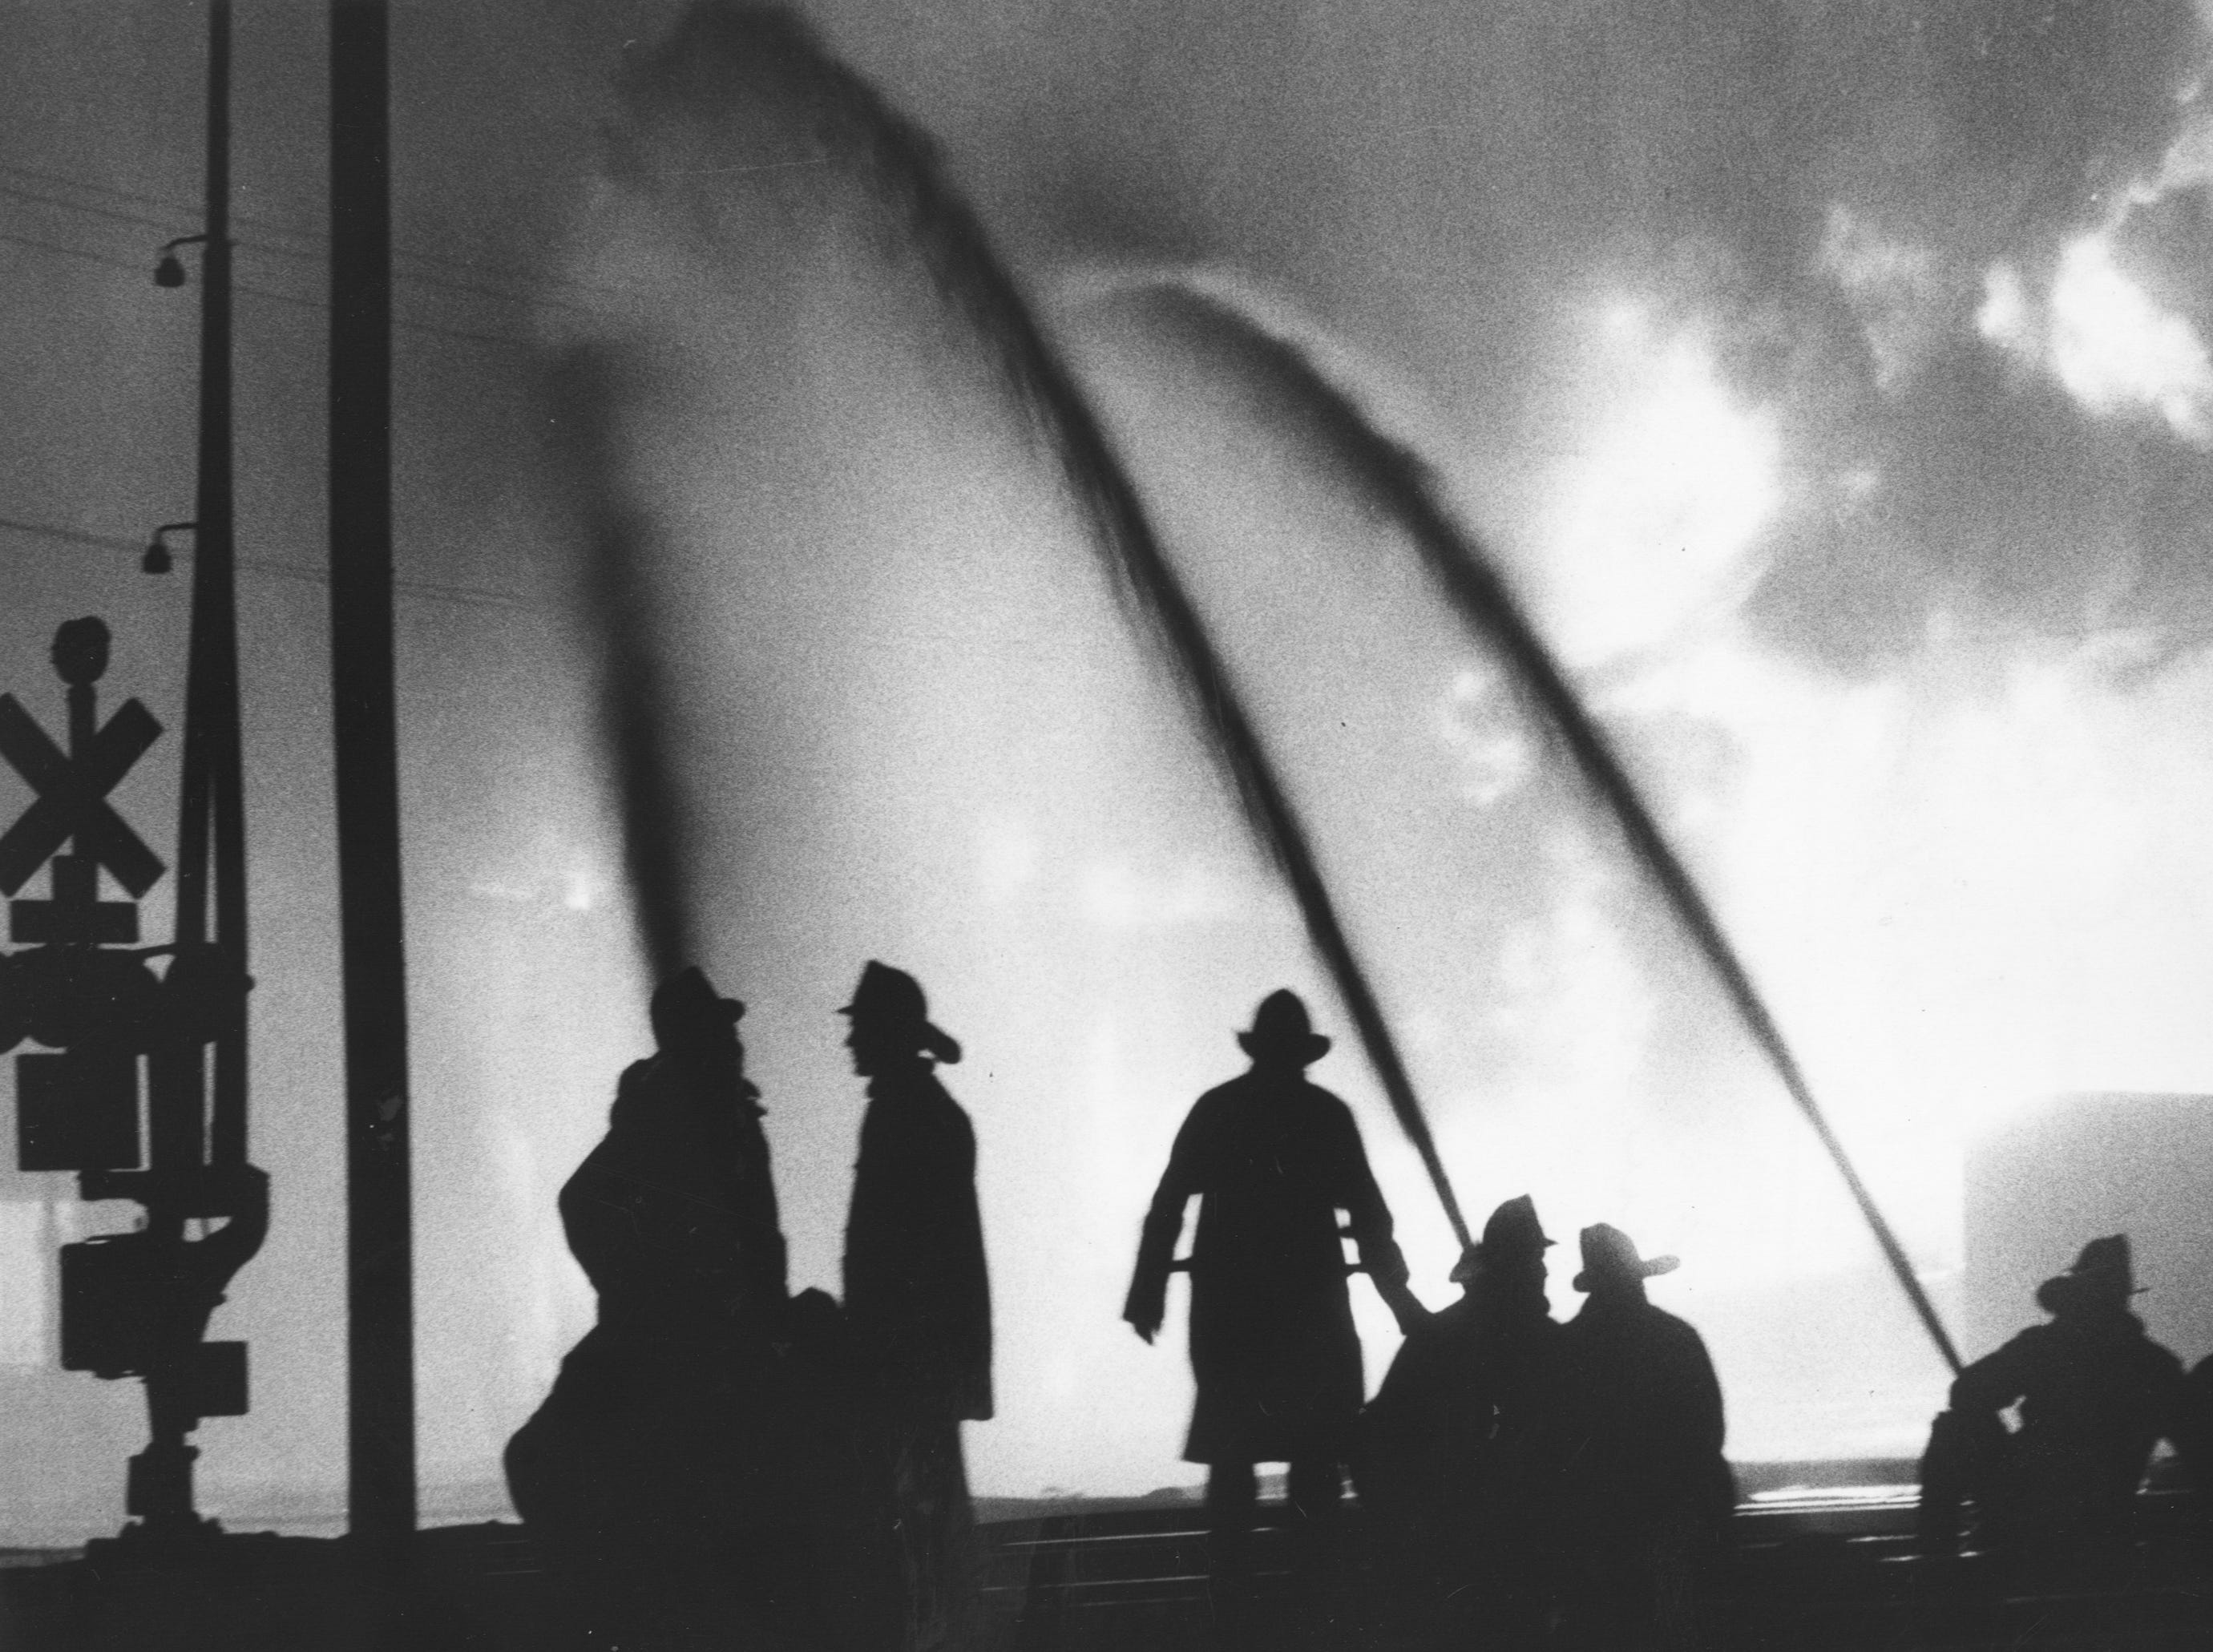 A fire at the Bronco Chemical Co. located at 14th and Kentucky.